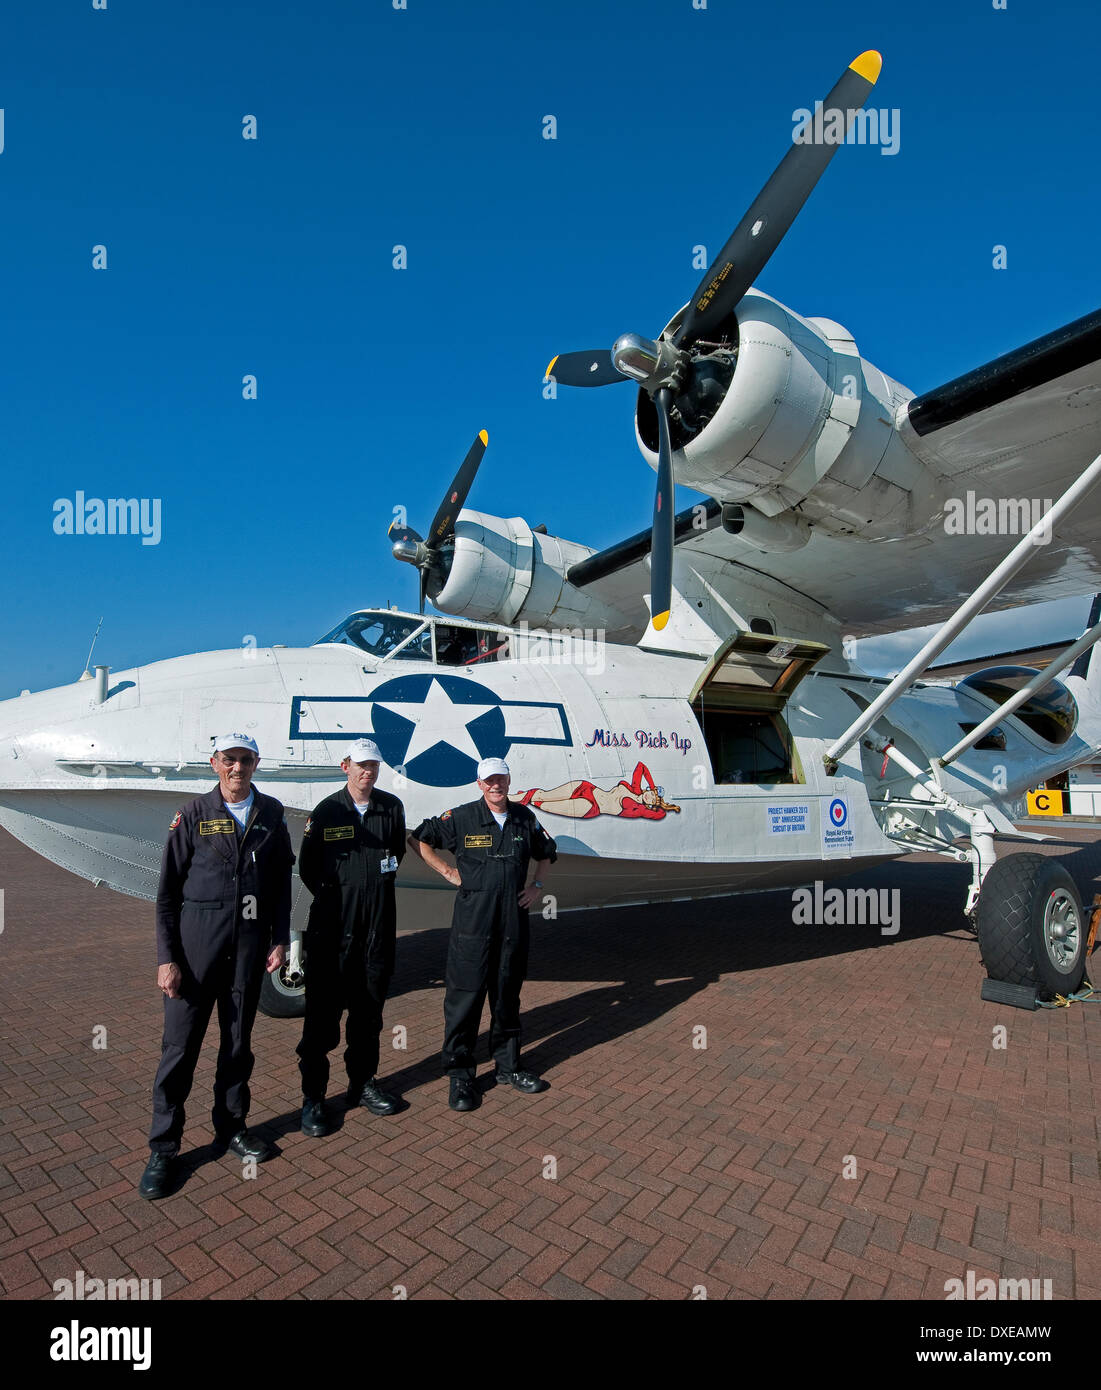 PBY-5A catalina flying boat at Oban airport Argyll during the around britain hawker project 2013 - Stock Image